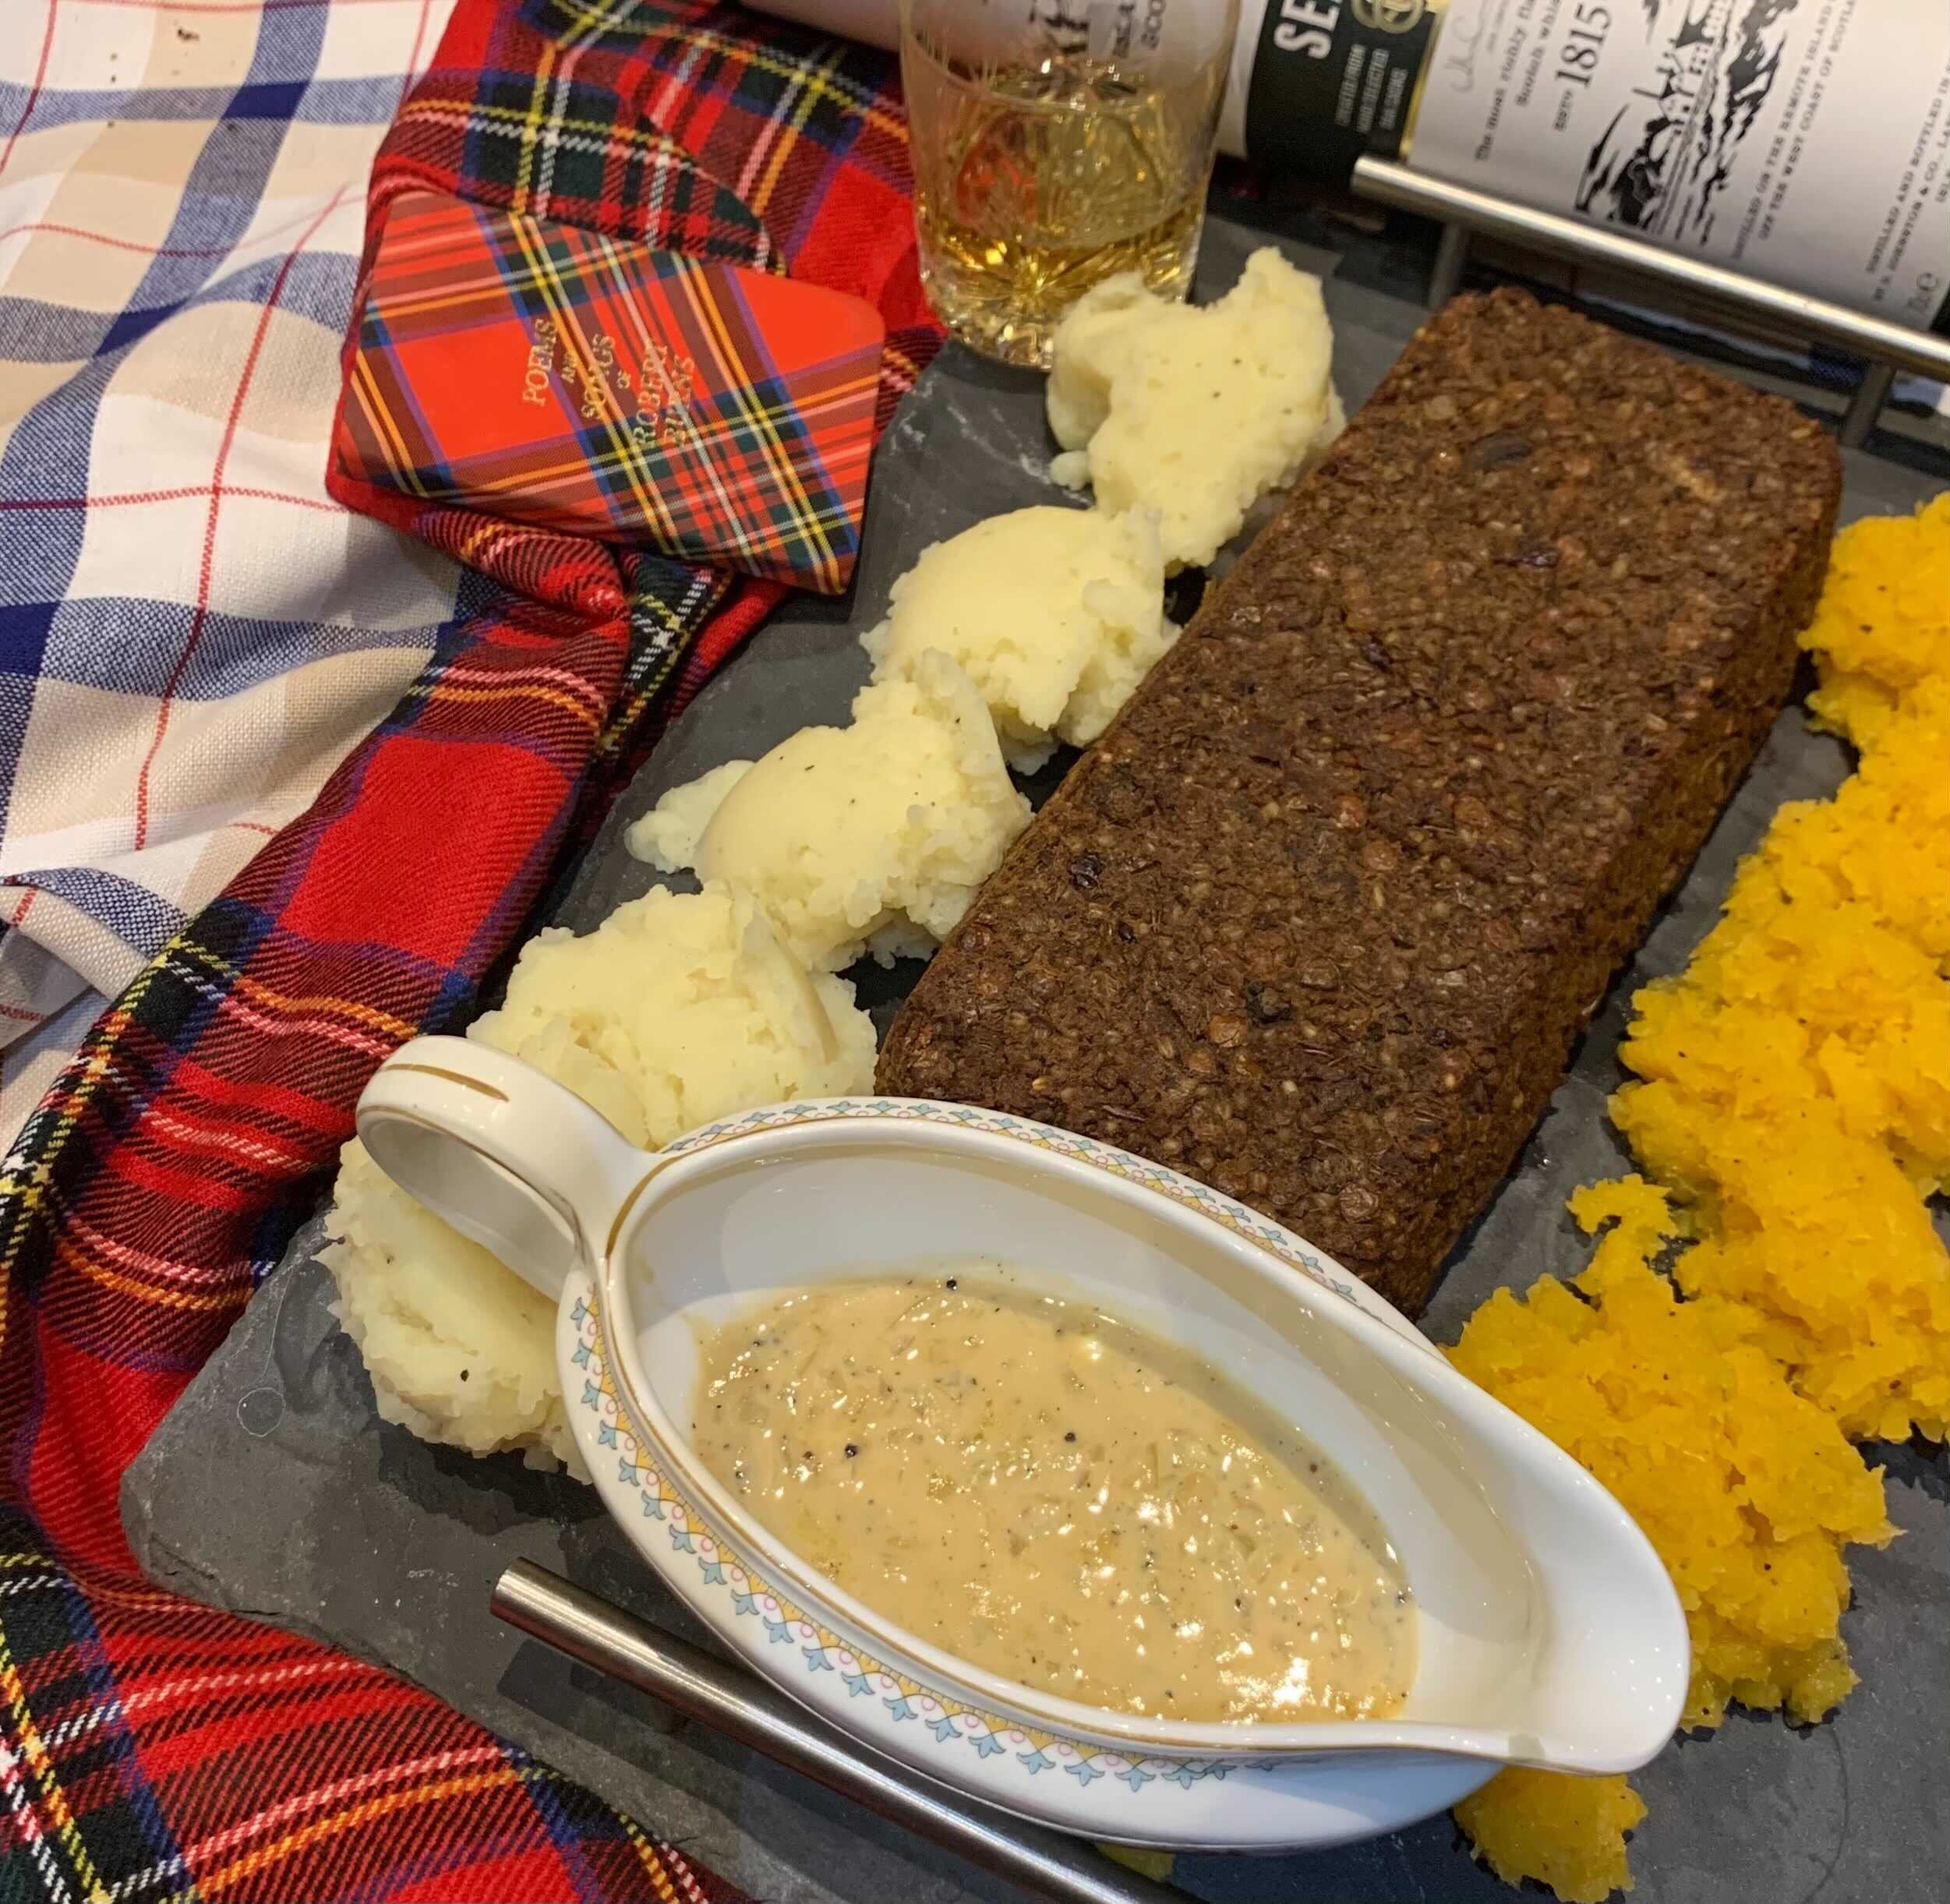 Vegan and gluten-free haggis